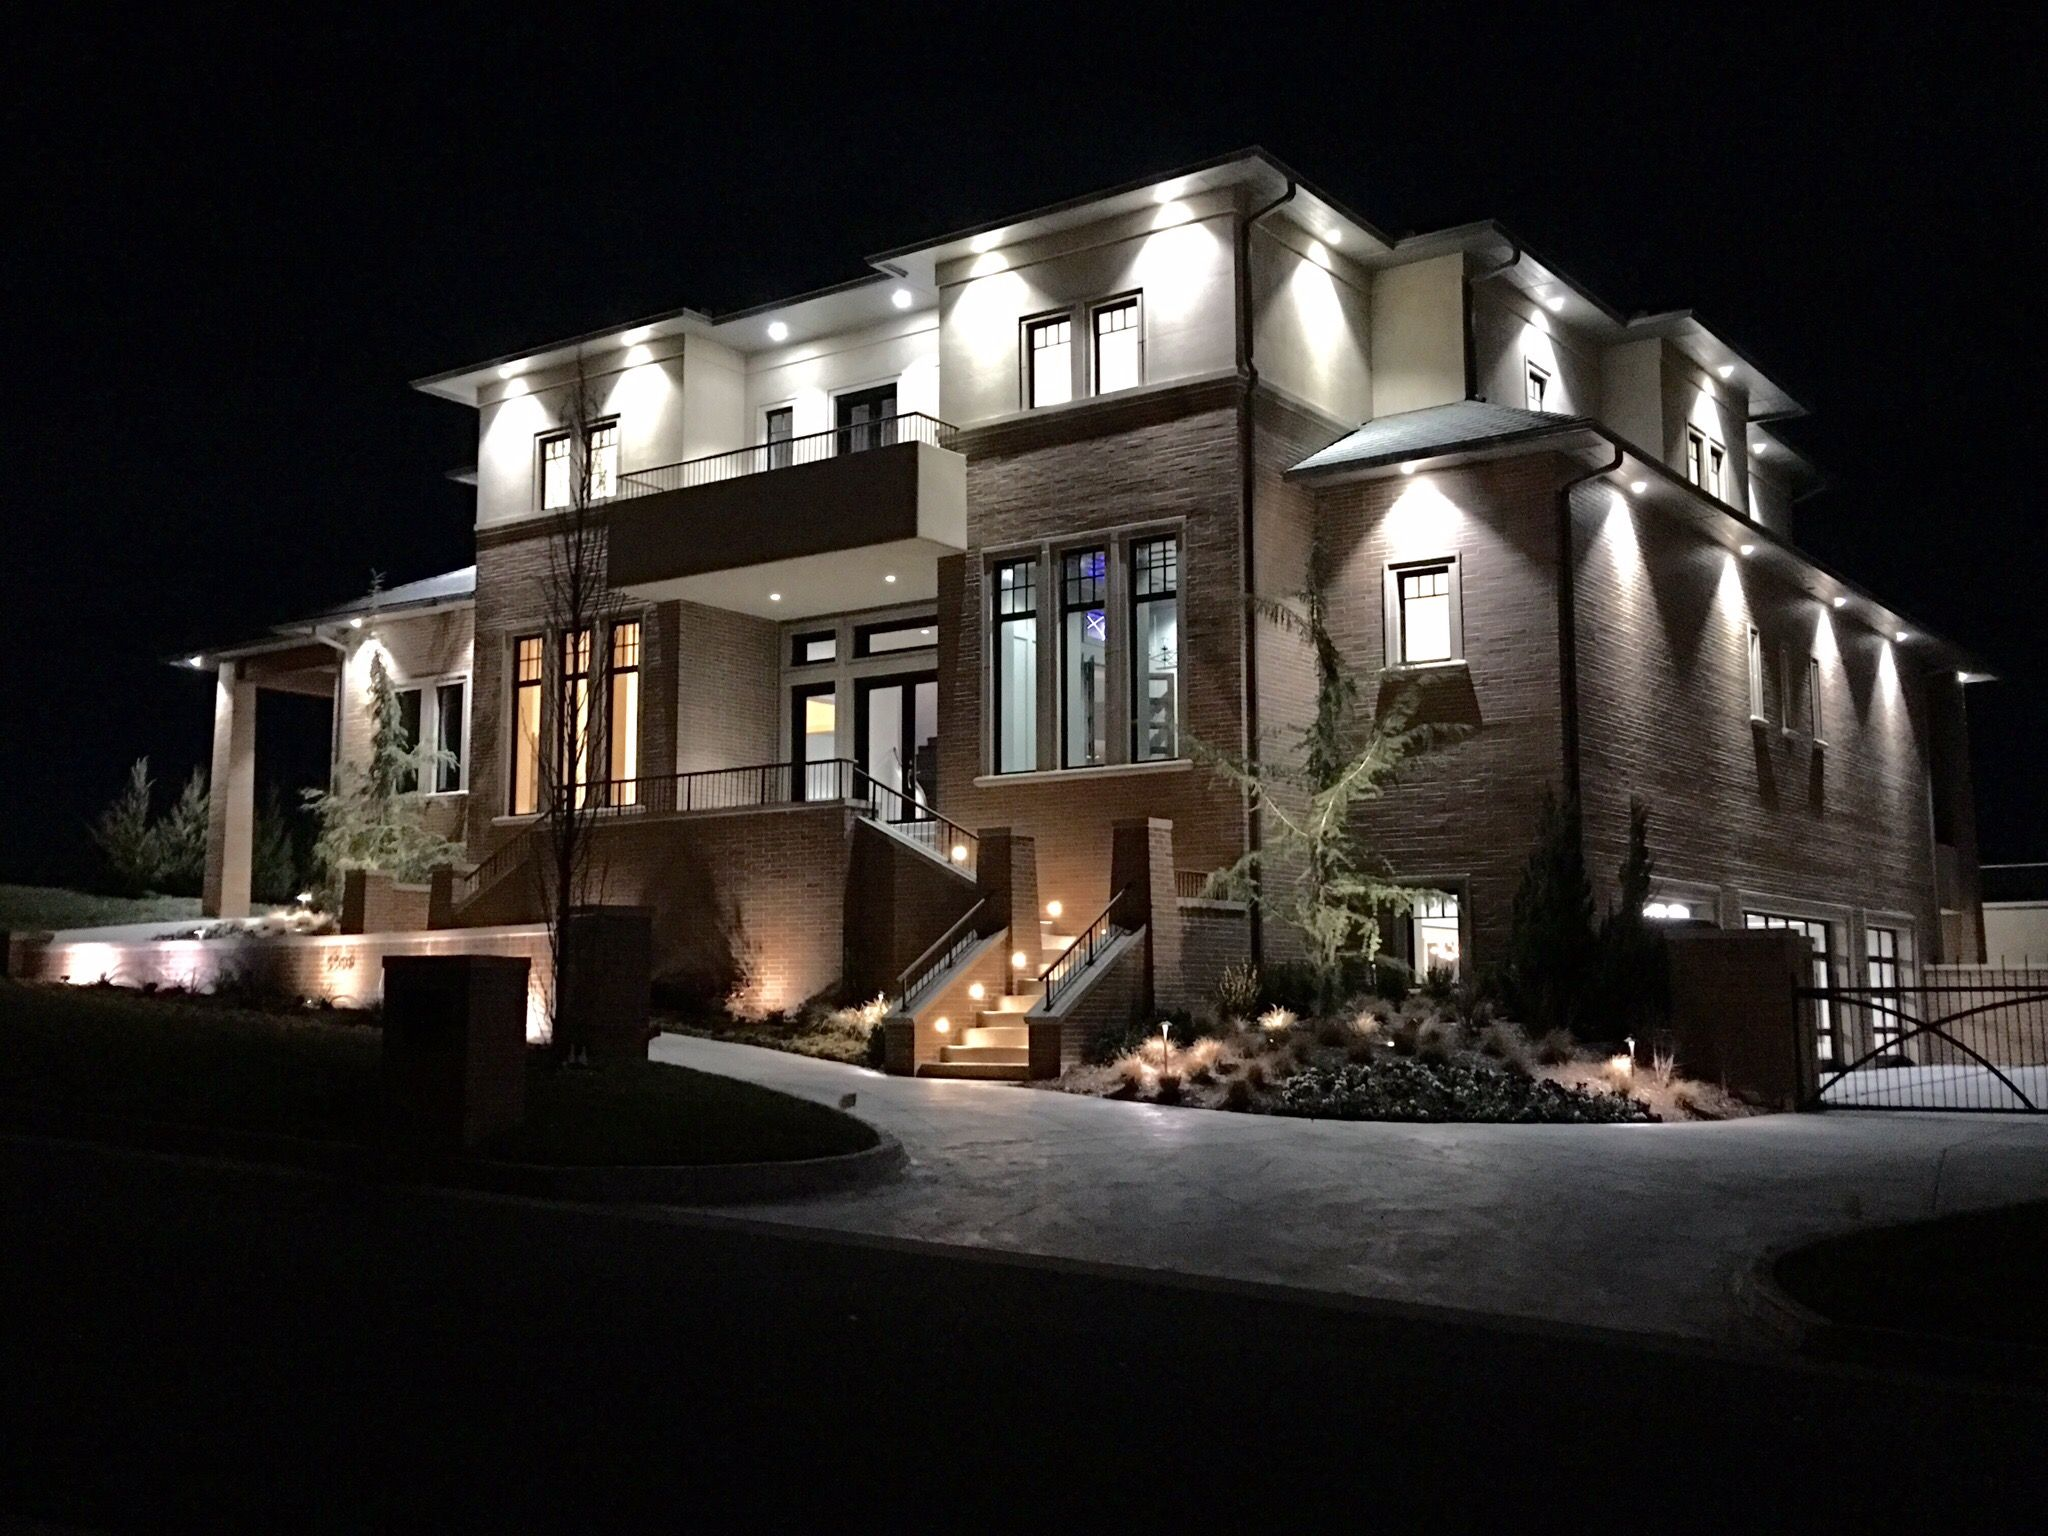 It Was An Absolute Pleasure To Work With Dave Goodman Homes On This Luxurious Home In Gaillardia Architecture Interior Design Work Luxury Homes